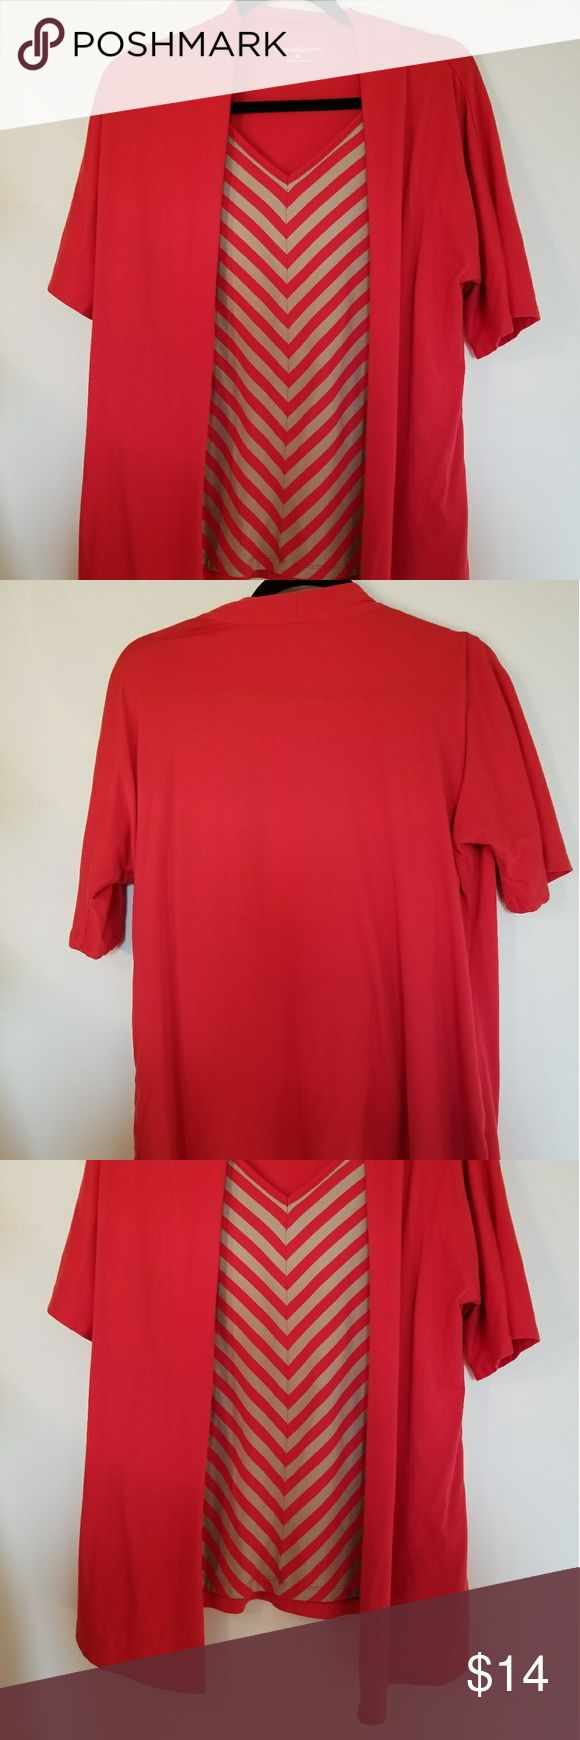 Red cami long sleeve Red cami long sleeve  Brand croft &barrow  Size xl  Color red on outside  Color tan and red on the inside  Inside shirt attached. Machine washable croft & barrow Tops Camisoles